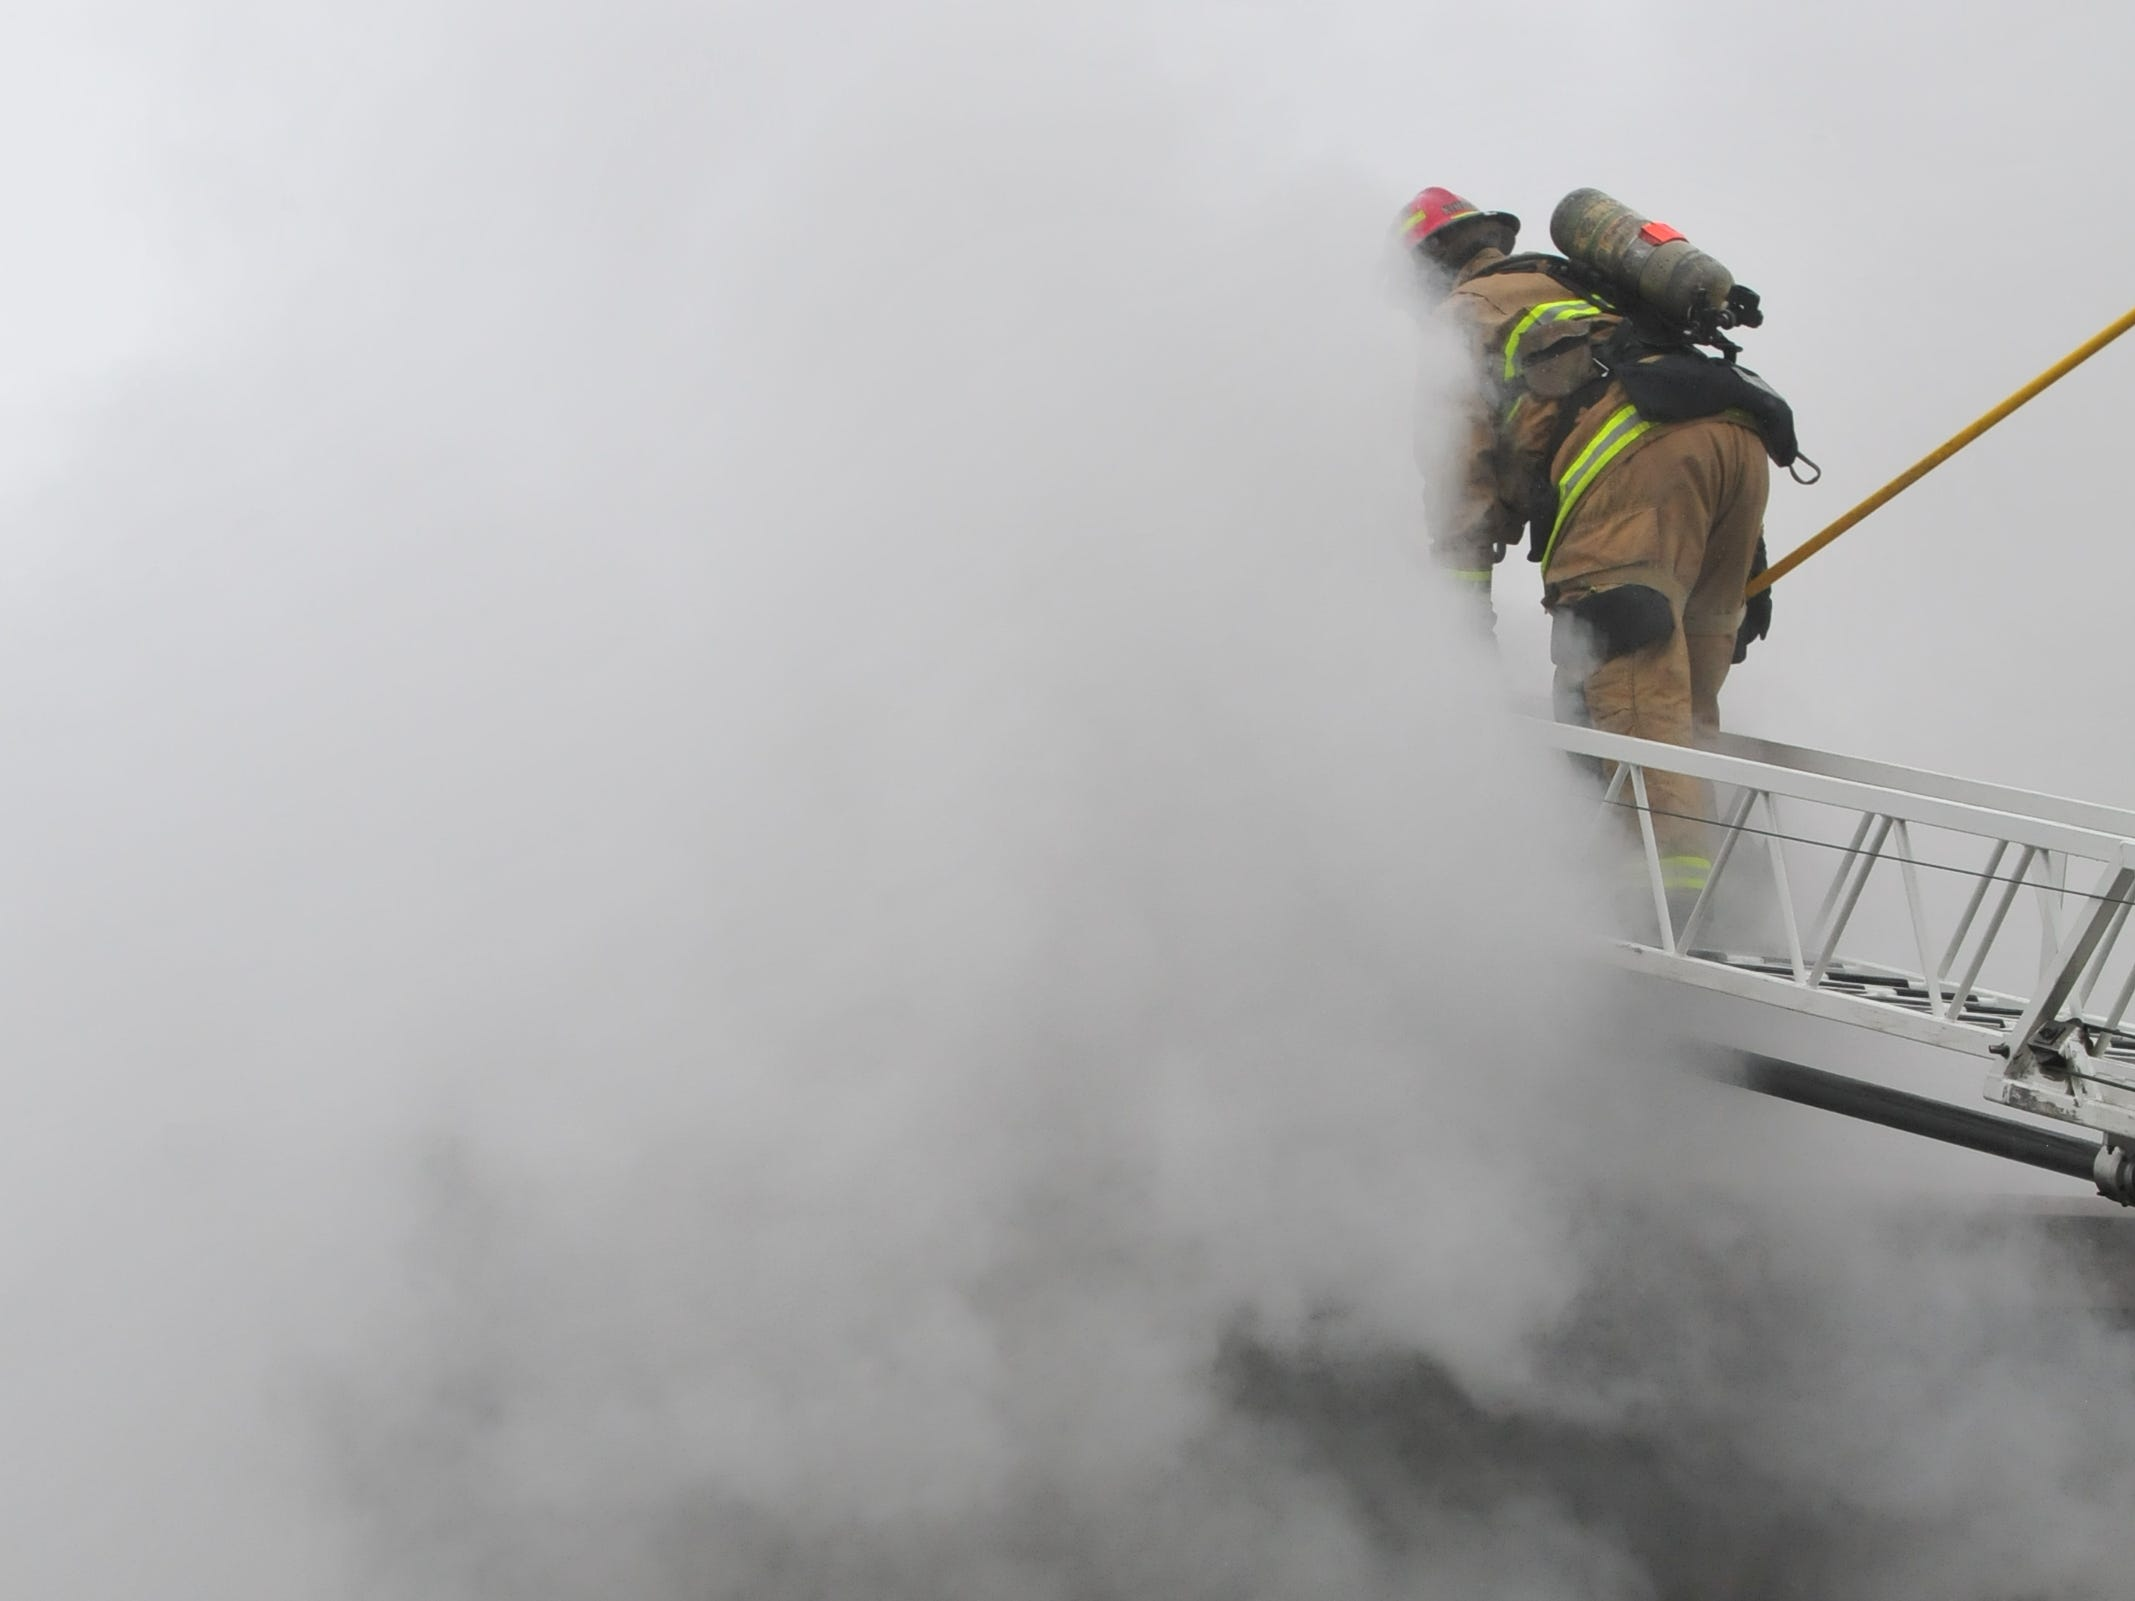 Richmond Fire Department personnel access the roof with an aerial ladder Wednesday during a fire at 112 N. 18th St.